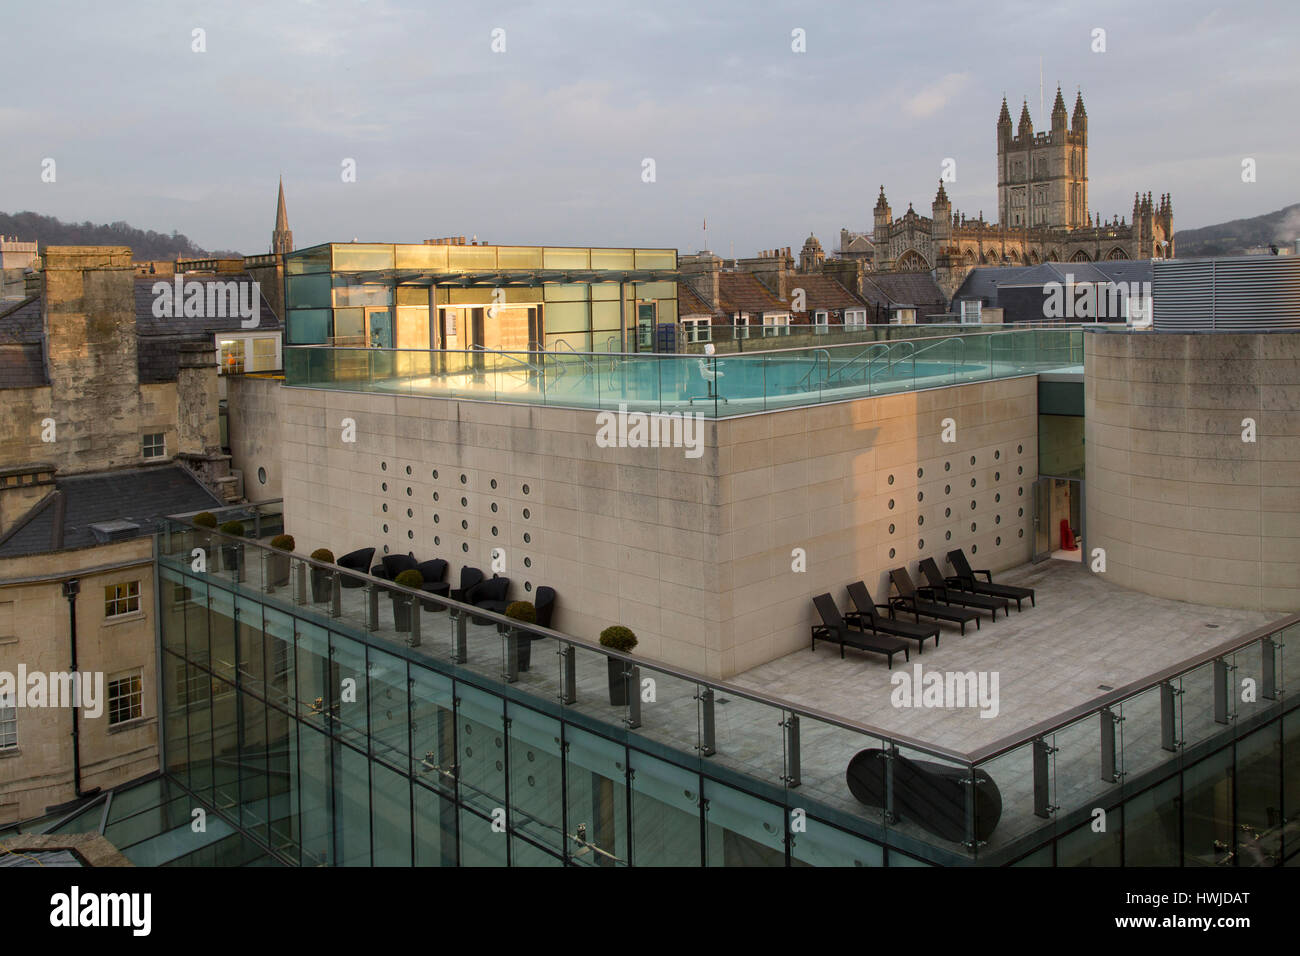 The Rooftop Thermae Bath Spa In Bath, England. The Tower Of Bath Abbey  Overlooks The City Centre Attraction